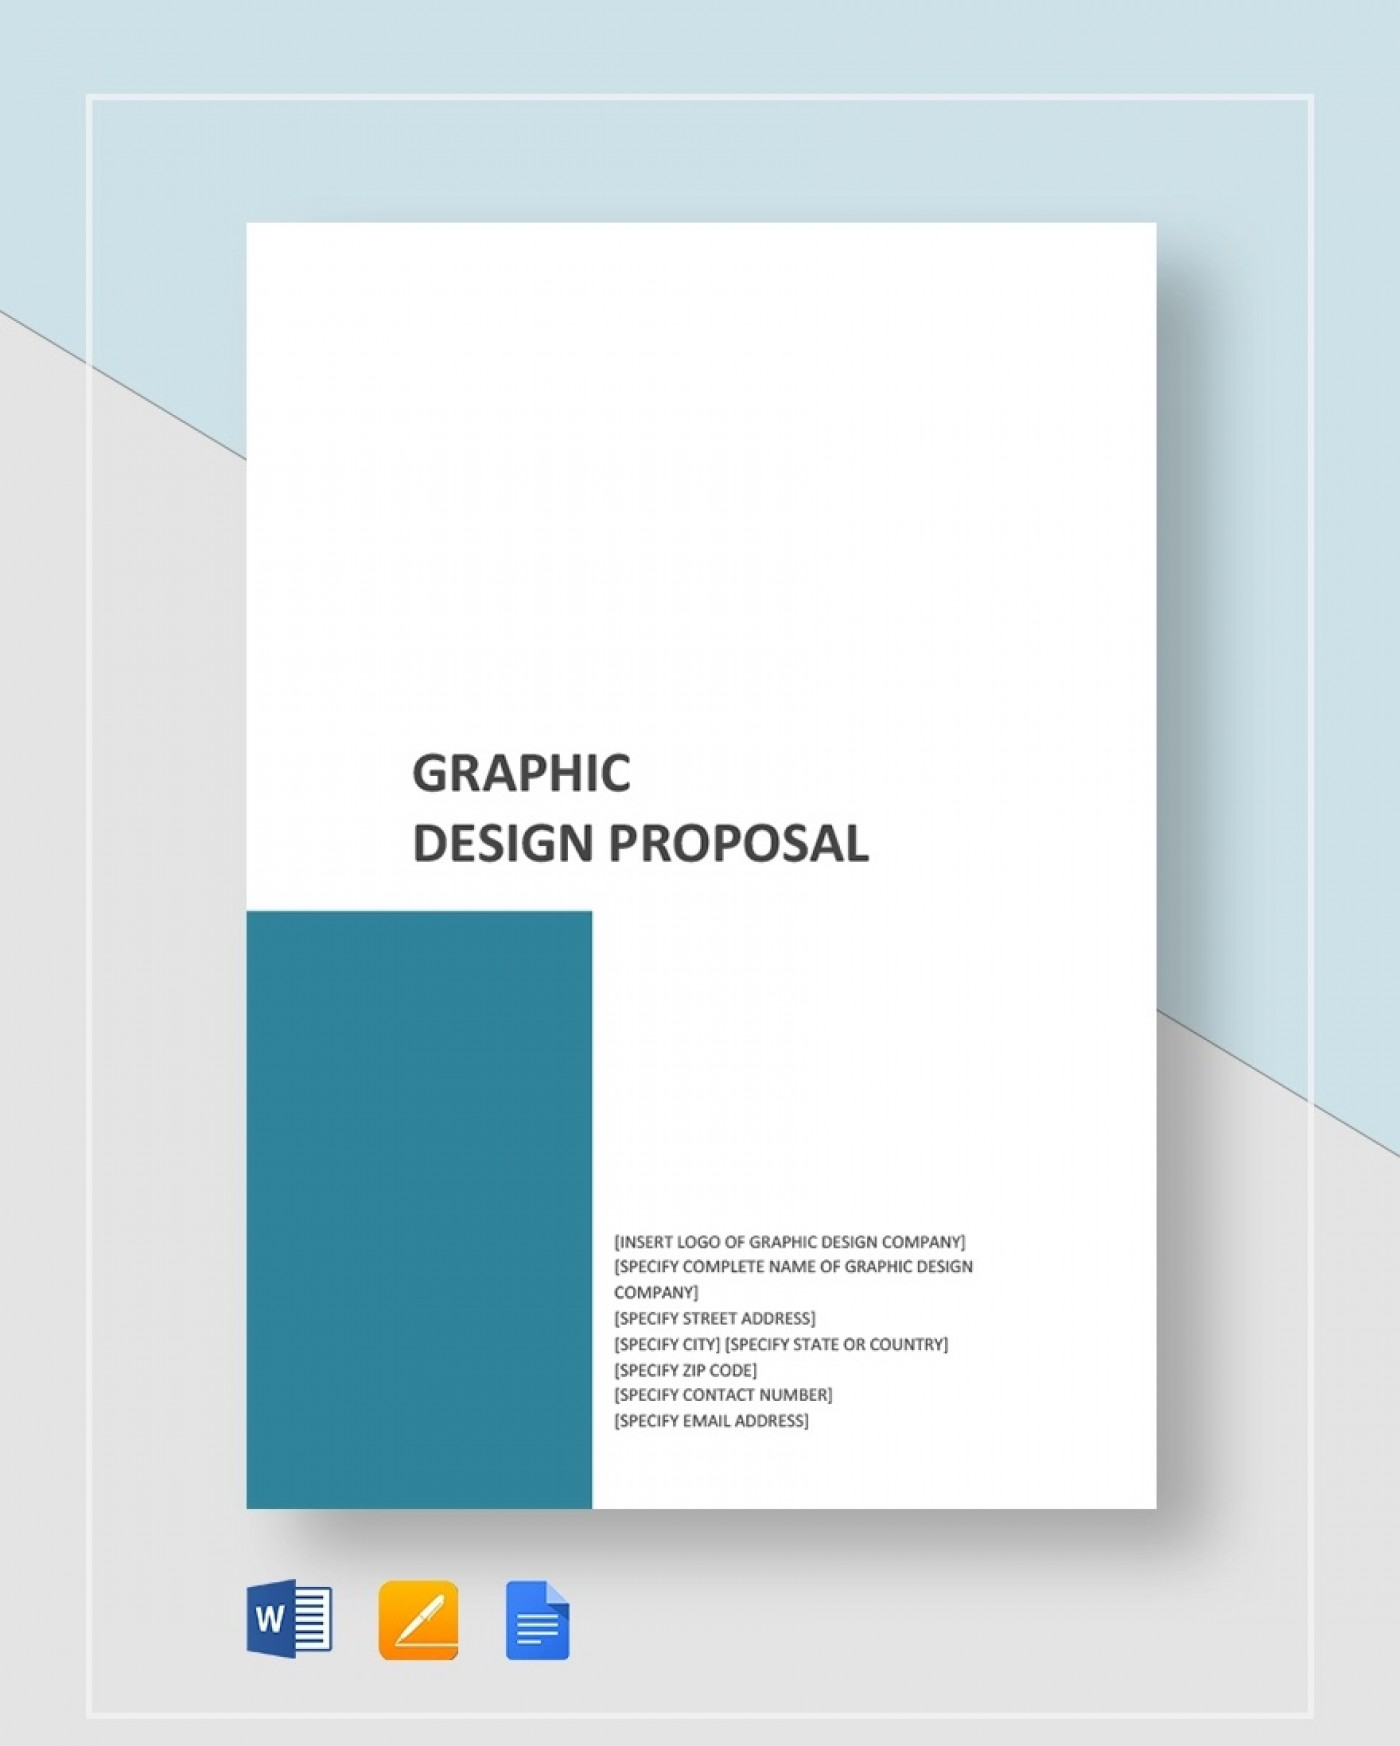 Template Graphic Design Proposal Idea  Free Freelance1400